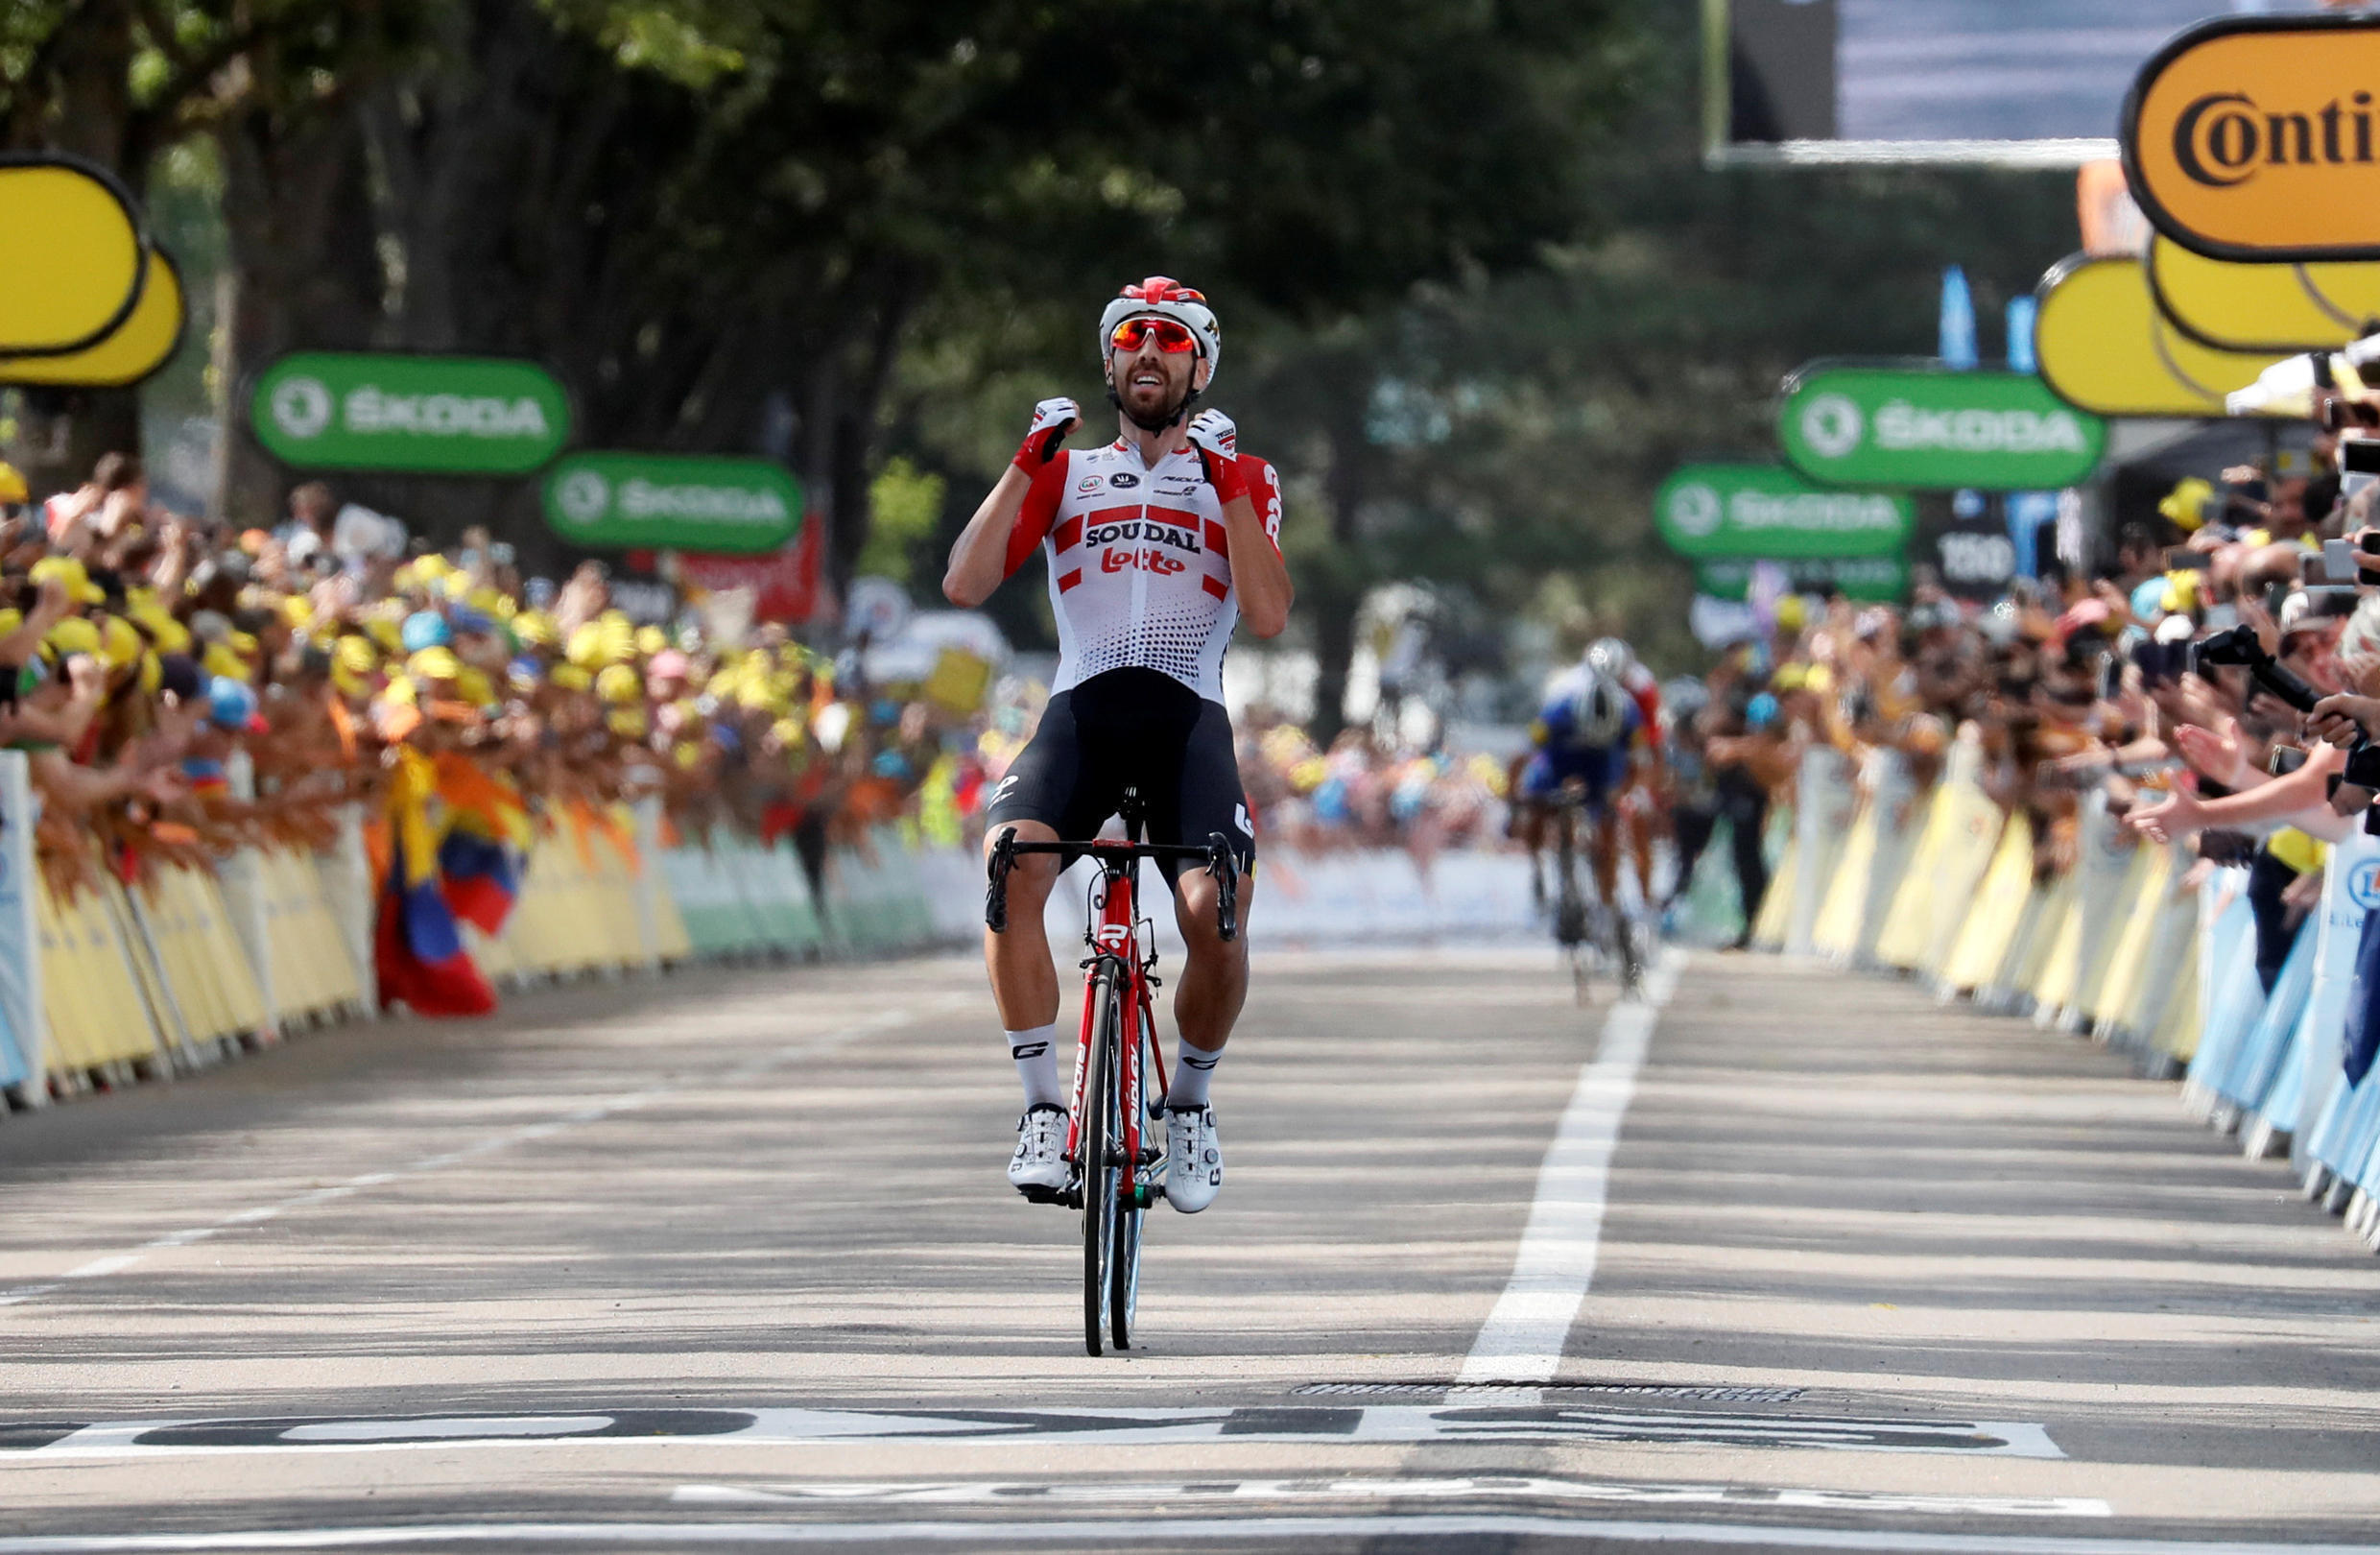 Thomas De Gendt of Belgium wins the 200-km stage 8 from Macon to St-Etienne ahead of the French duo of Thibaut Pinot and Julian Alaphilippe, 12 July 2019.